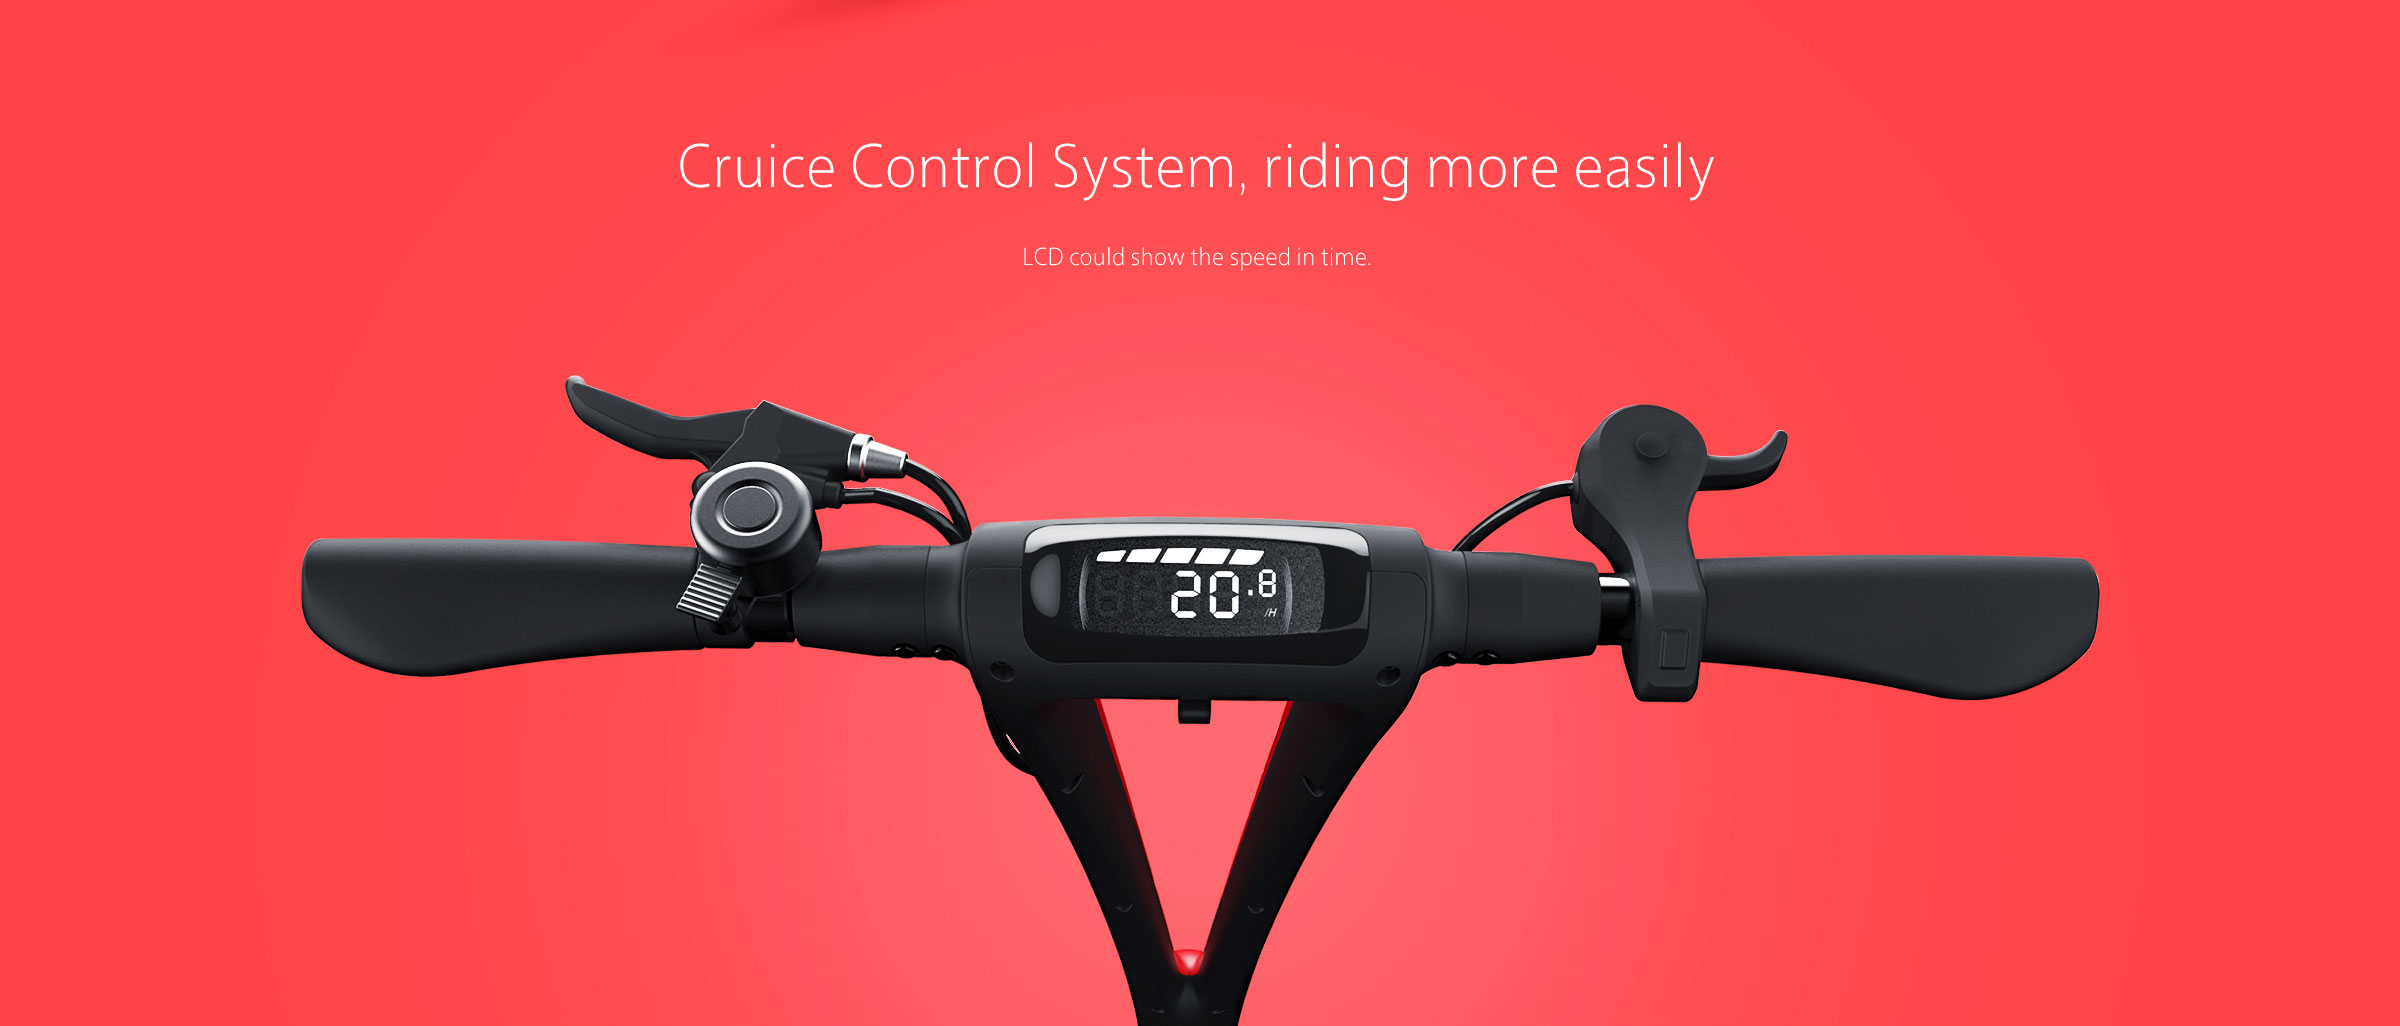 cruice control system,riding more easily